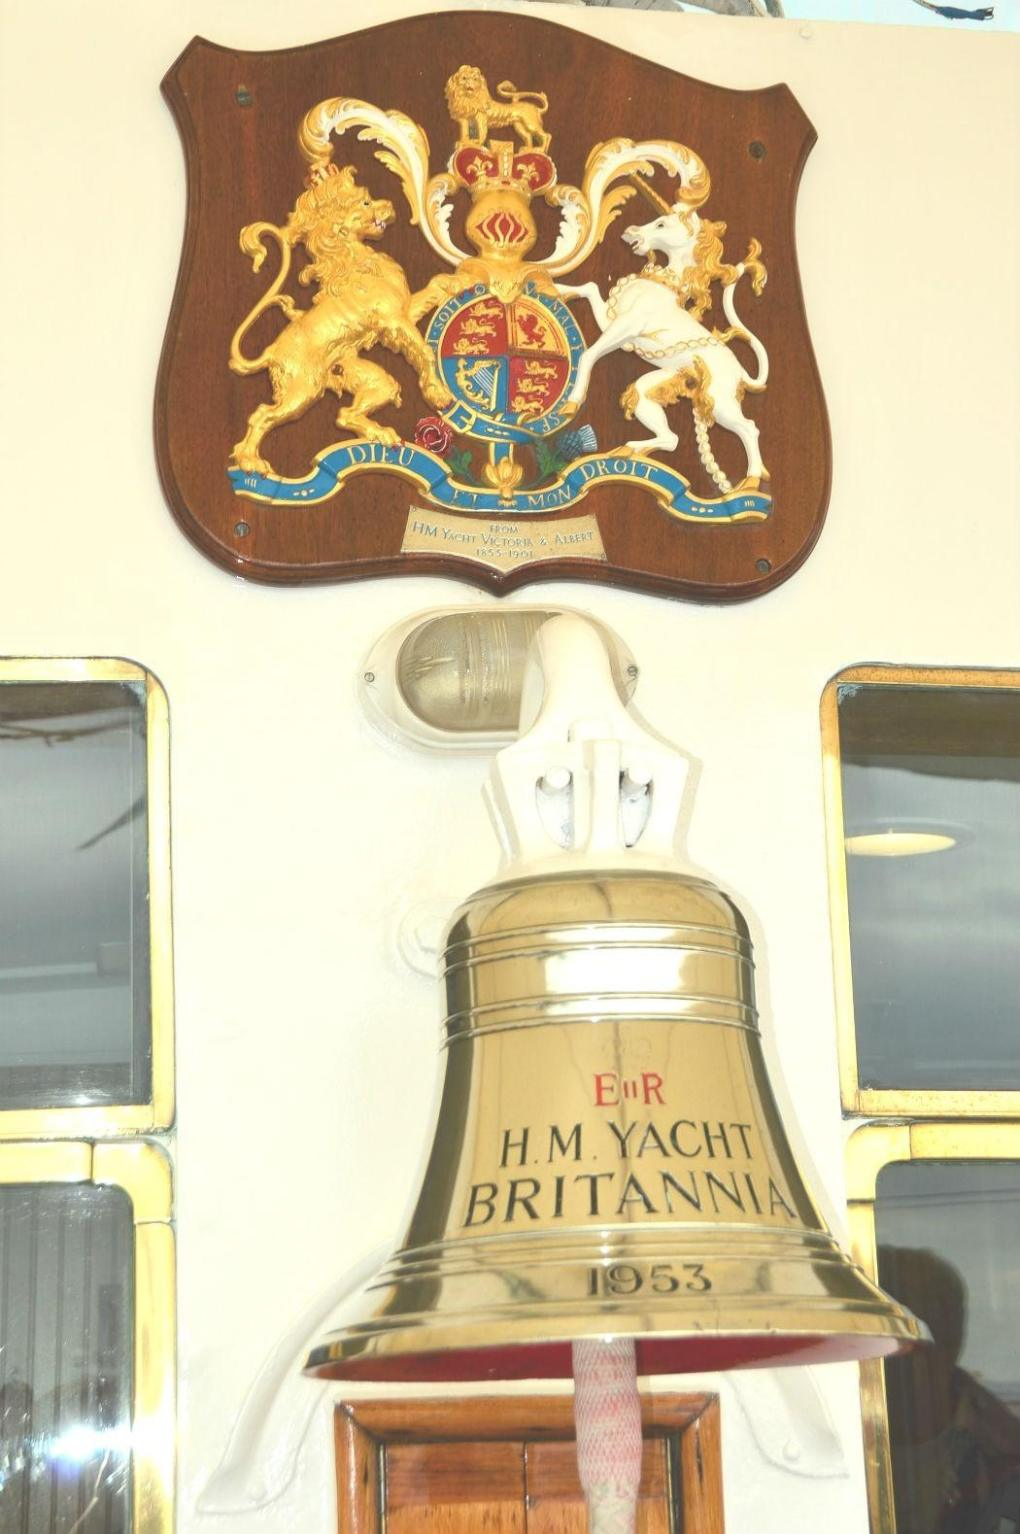 royal yacht britannia bell and crest